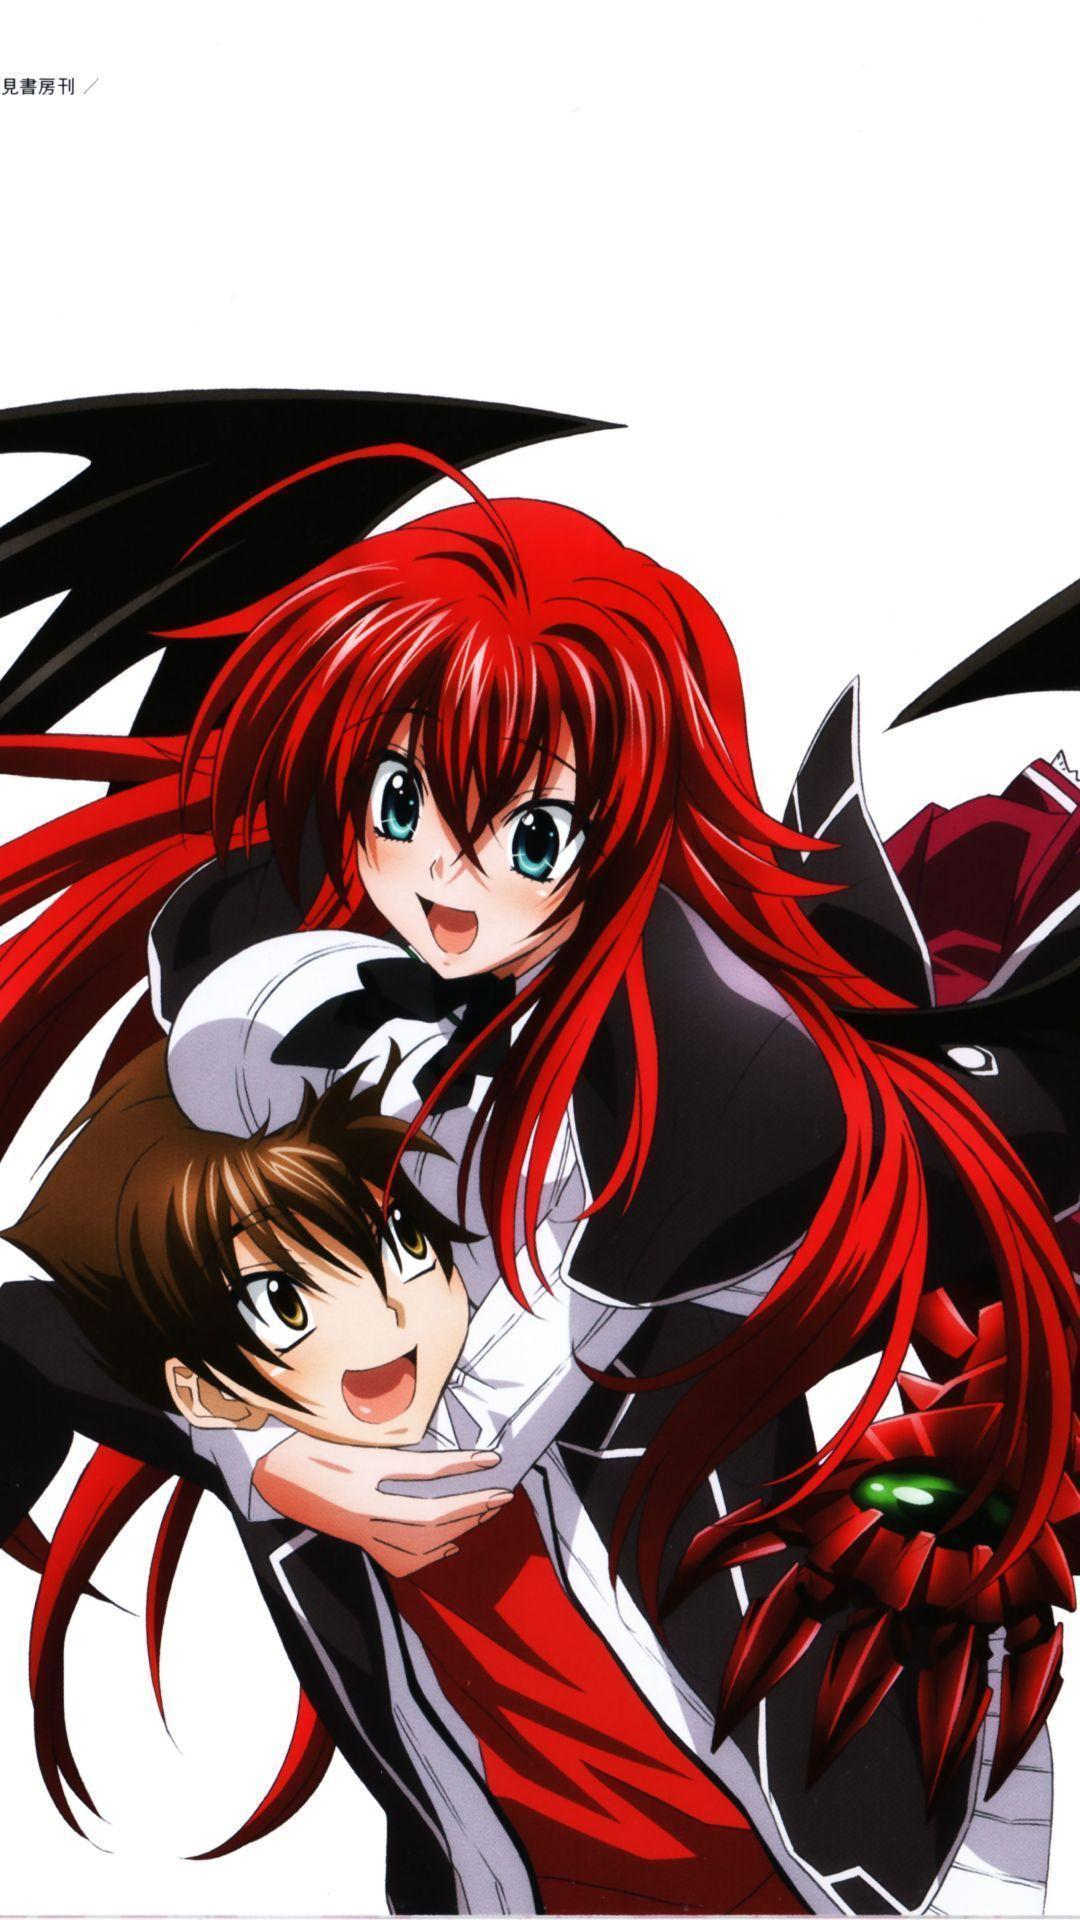 High School DxD 2017 Wallpapers - Wallpaper Cave